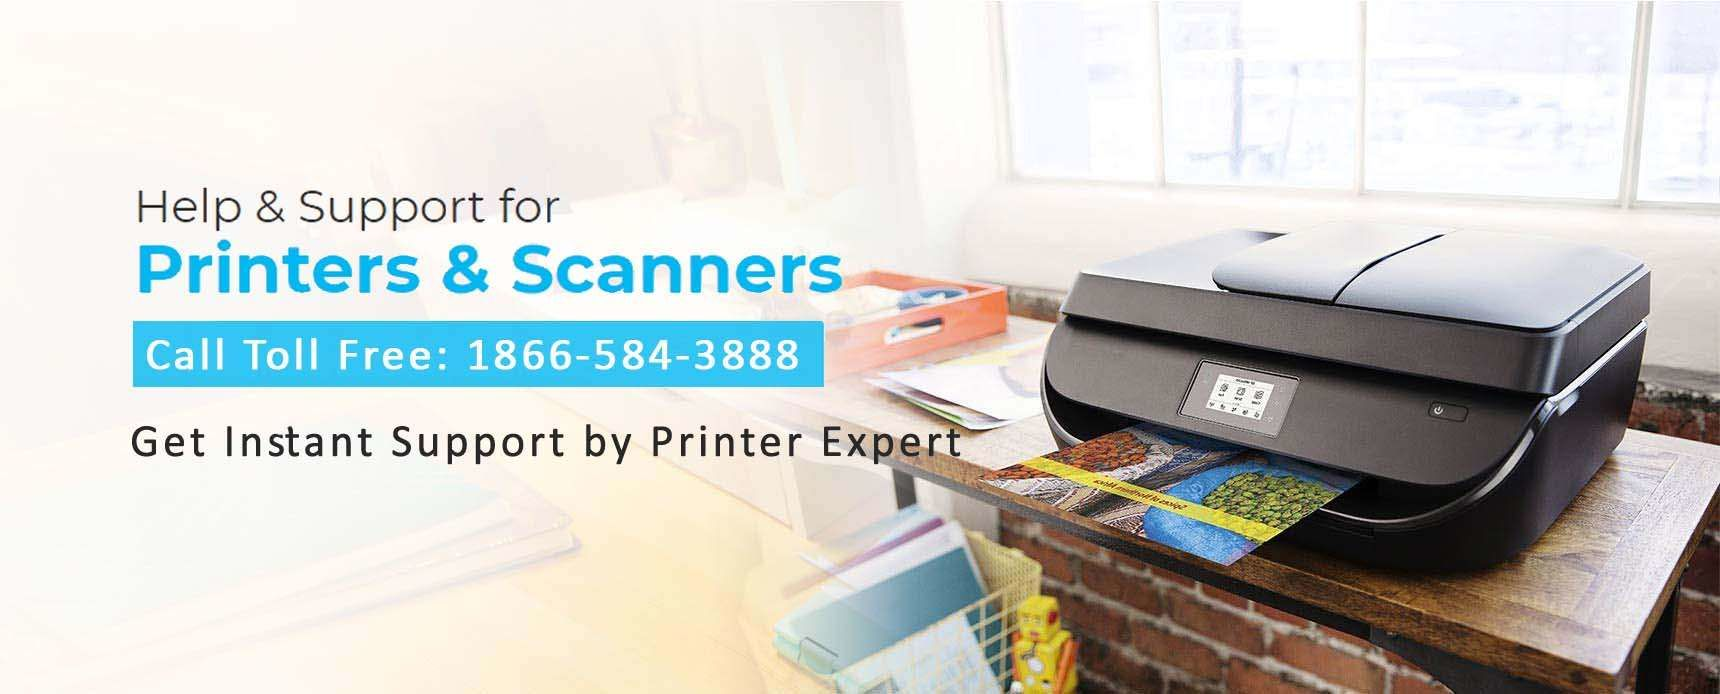 Hp Inkjet Printer Support In USA | HP Printer Support Number